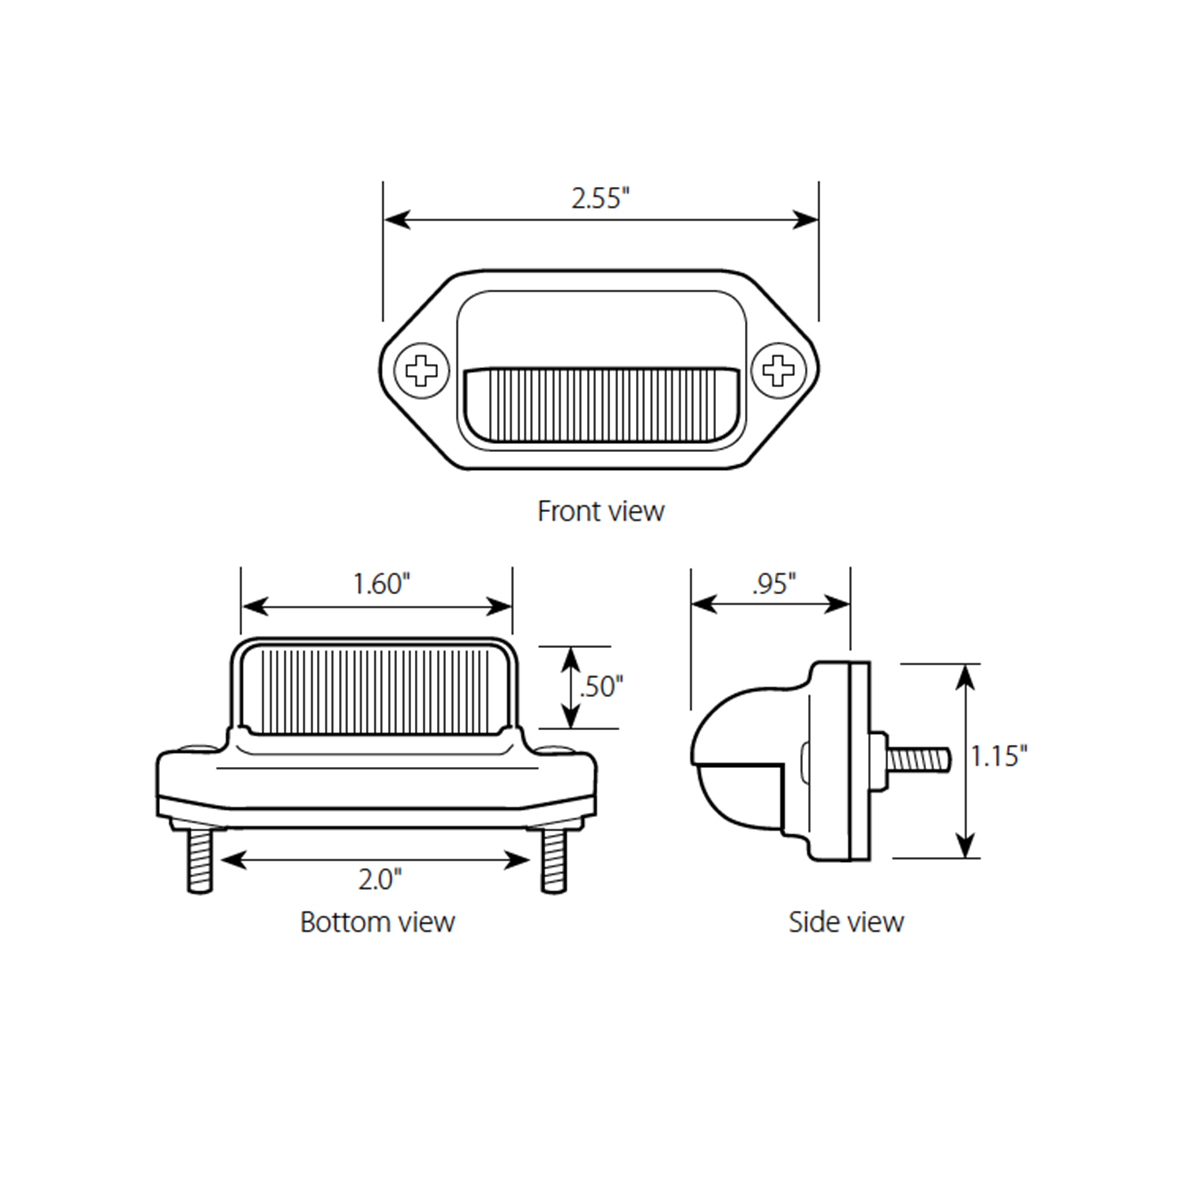 Interior/Utility LED Light